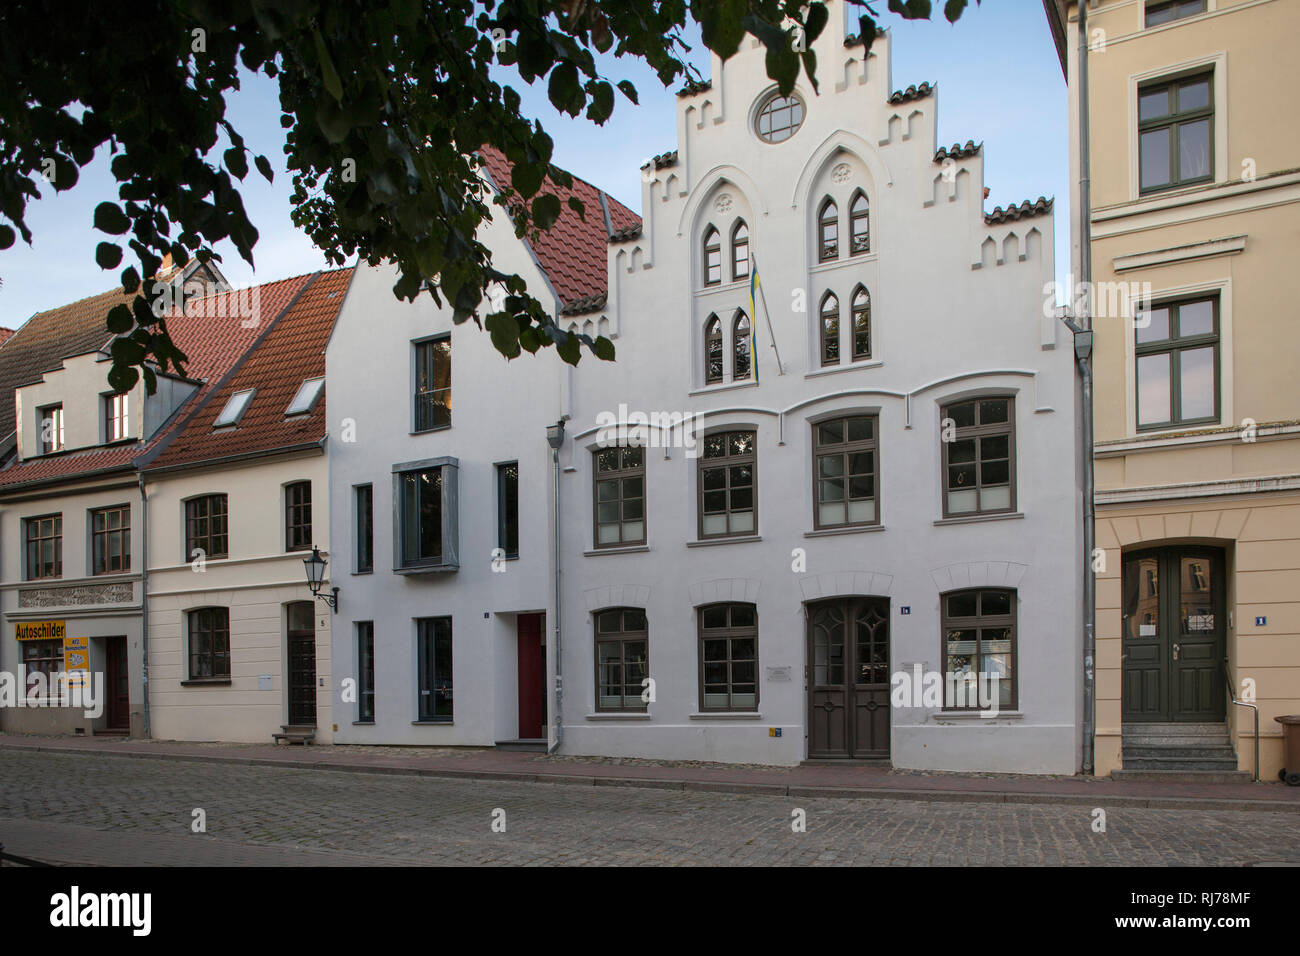 Gebäude in Wismar, Deutschland Stock Photo